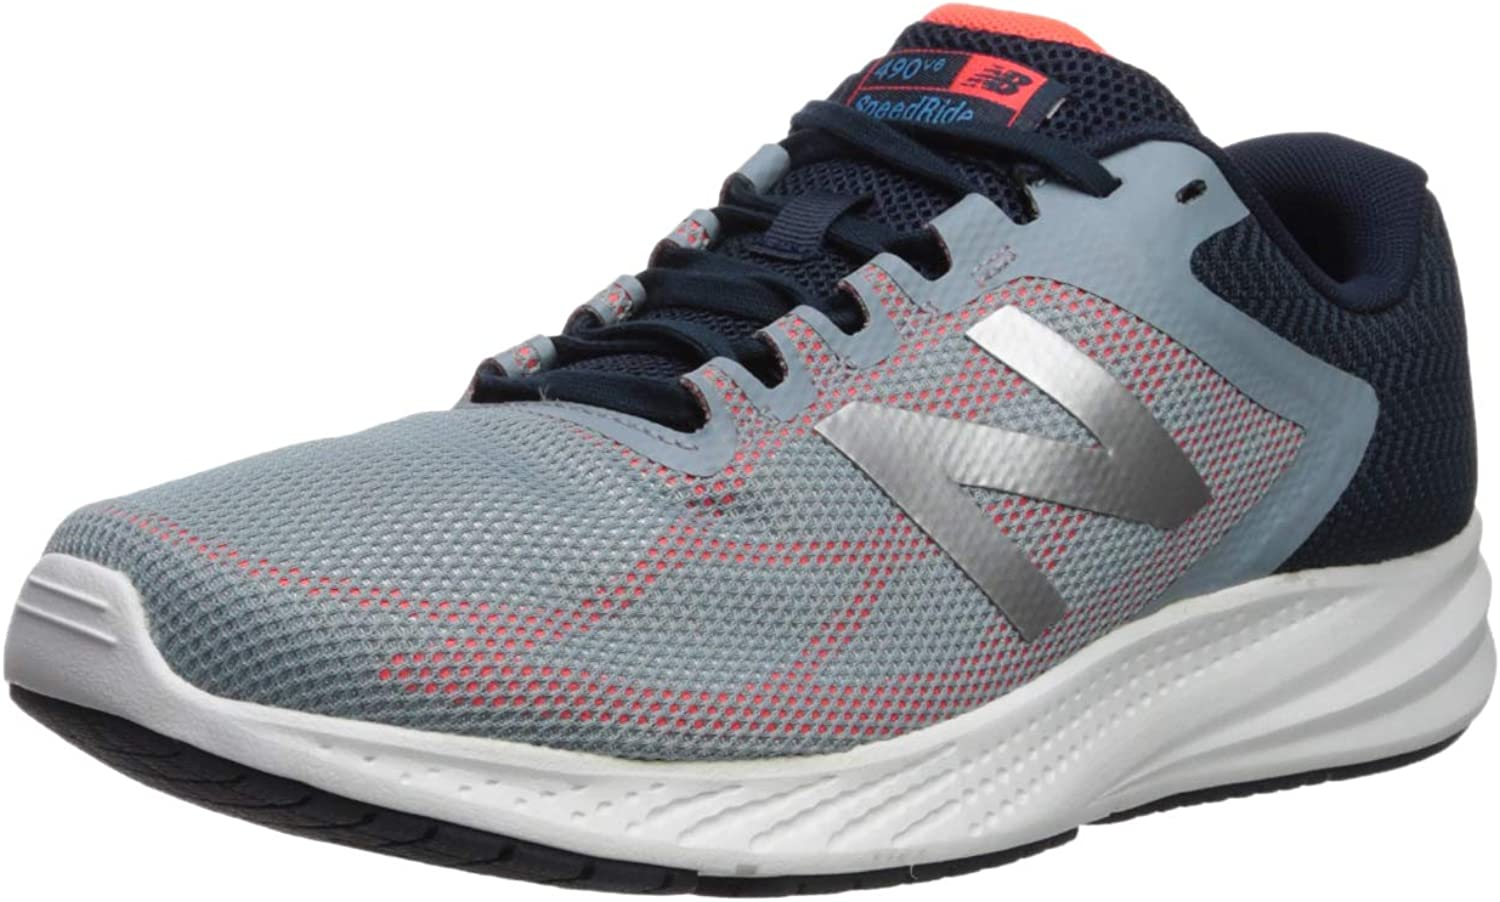 New BalanceNB18-M490V6-Mens - 490v6 Cushioning Herren, Grau (grau), 40 EU M